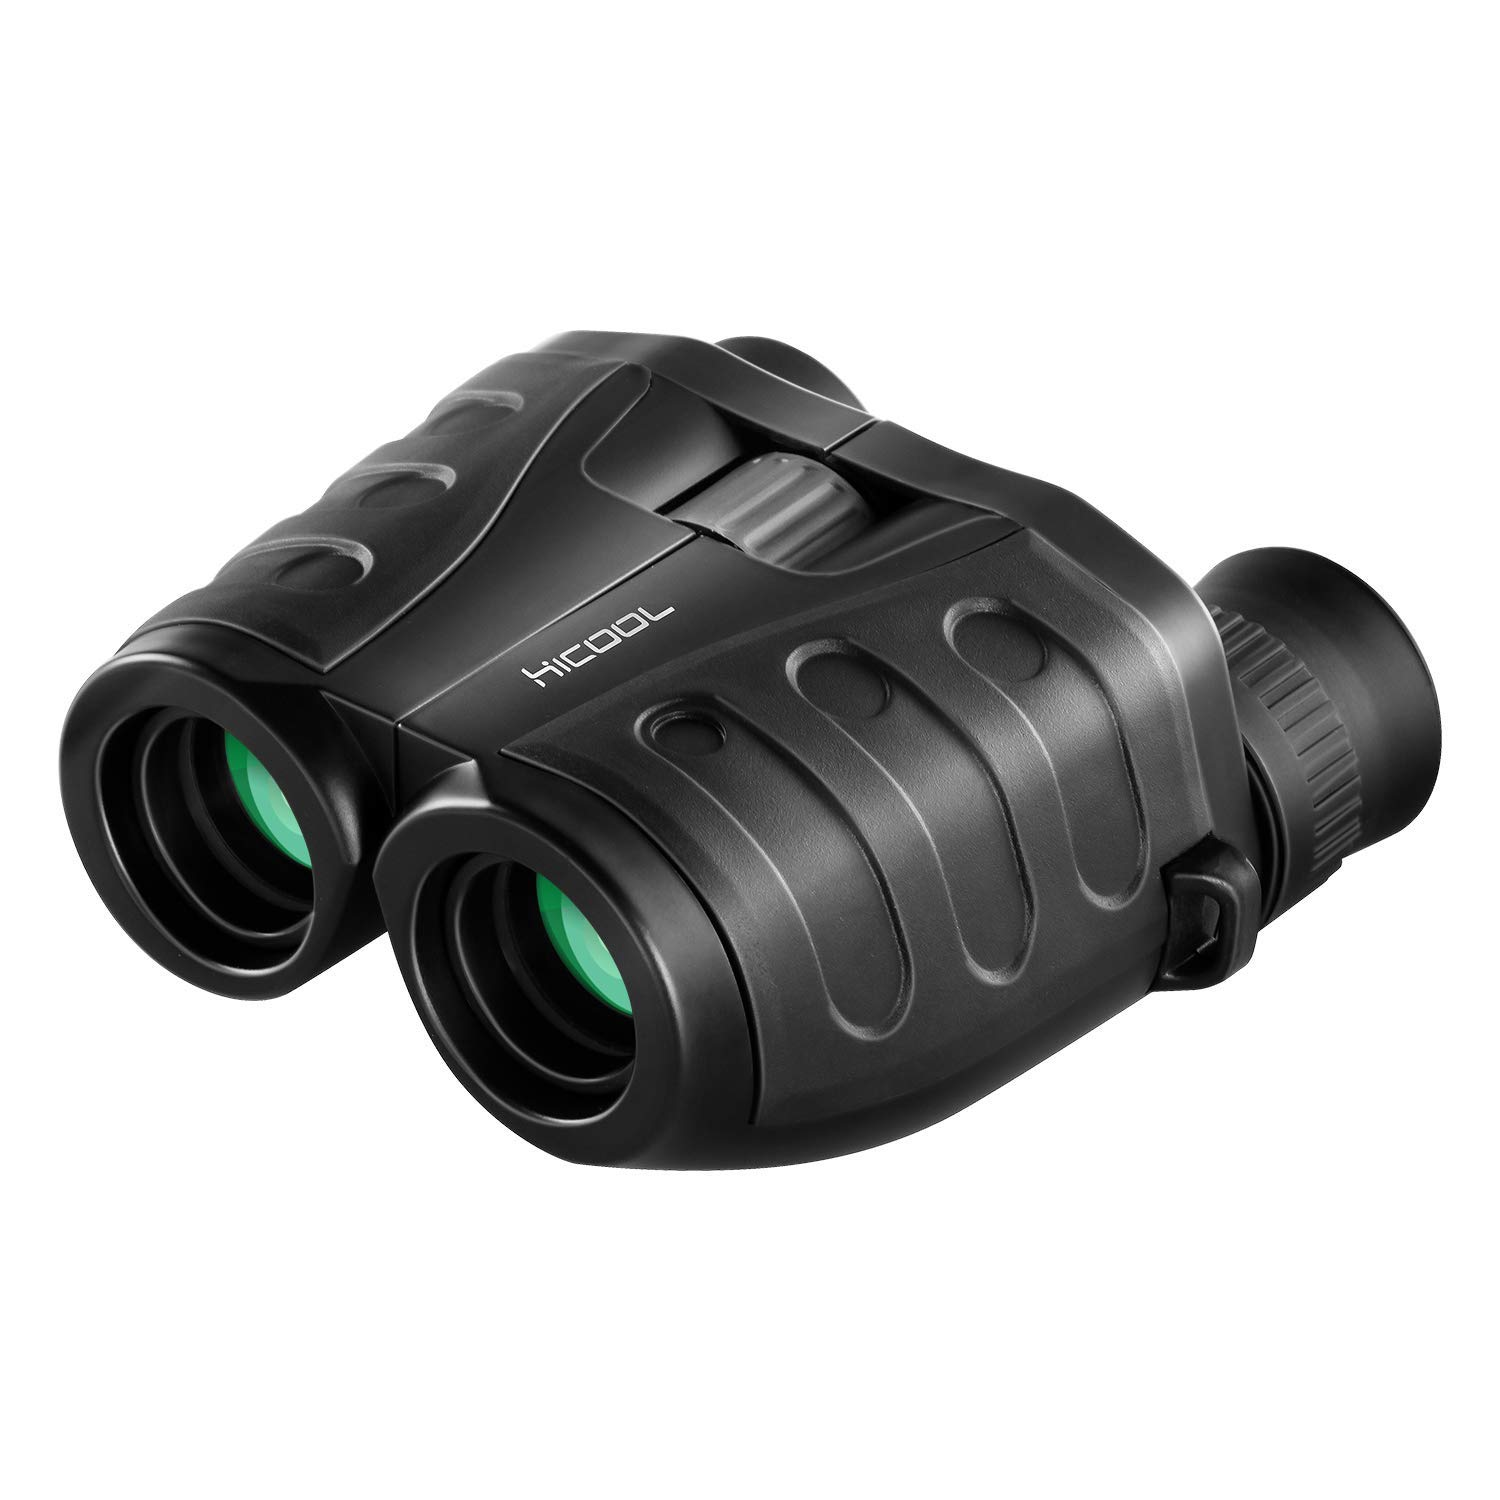 Binoculars, HiCool 10x25 Compact Binoculars for Adults and Kids Folding Lightweight Binoculars with FMC Coated Lens Weak Night Vision for Bird Watching, Hunting, Hiking, Concert and Sports Games